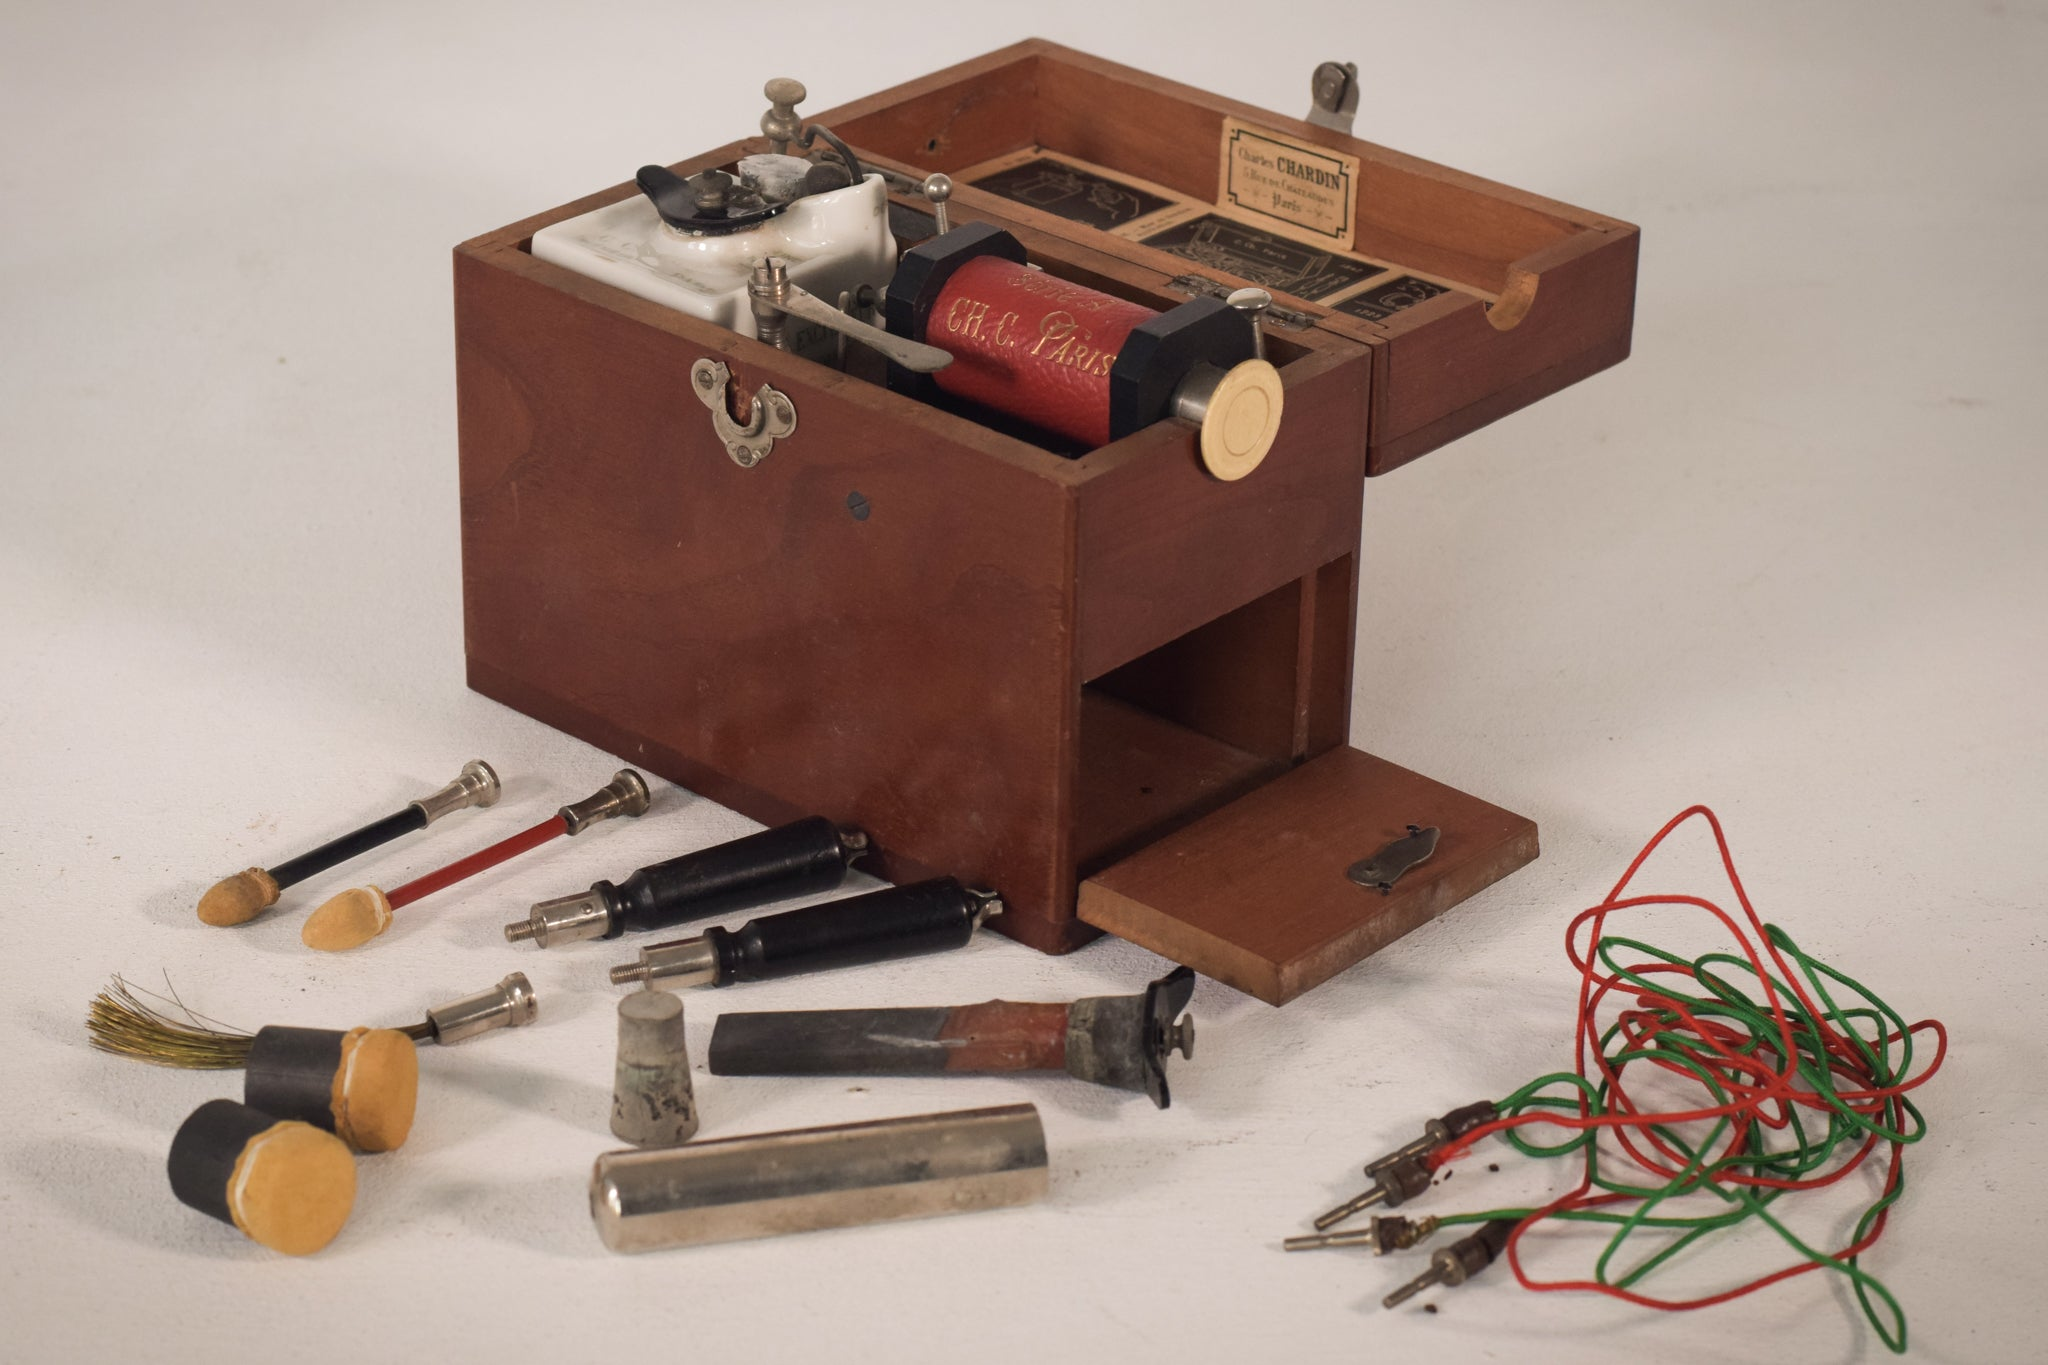 Charles Chardin electrotherapy device. Paris, c.1910.